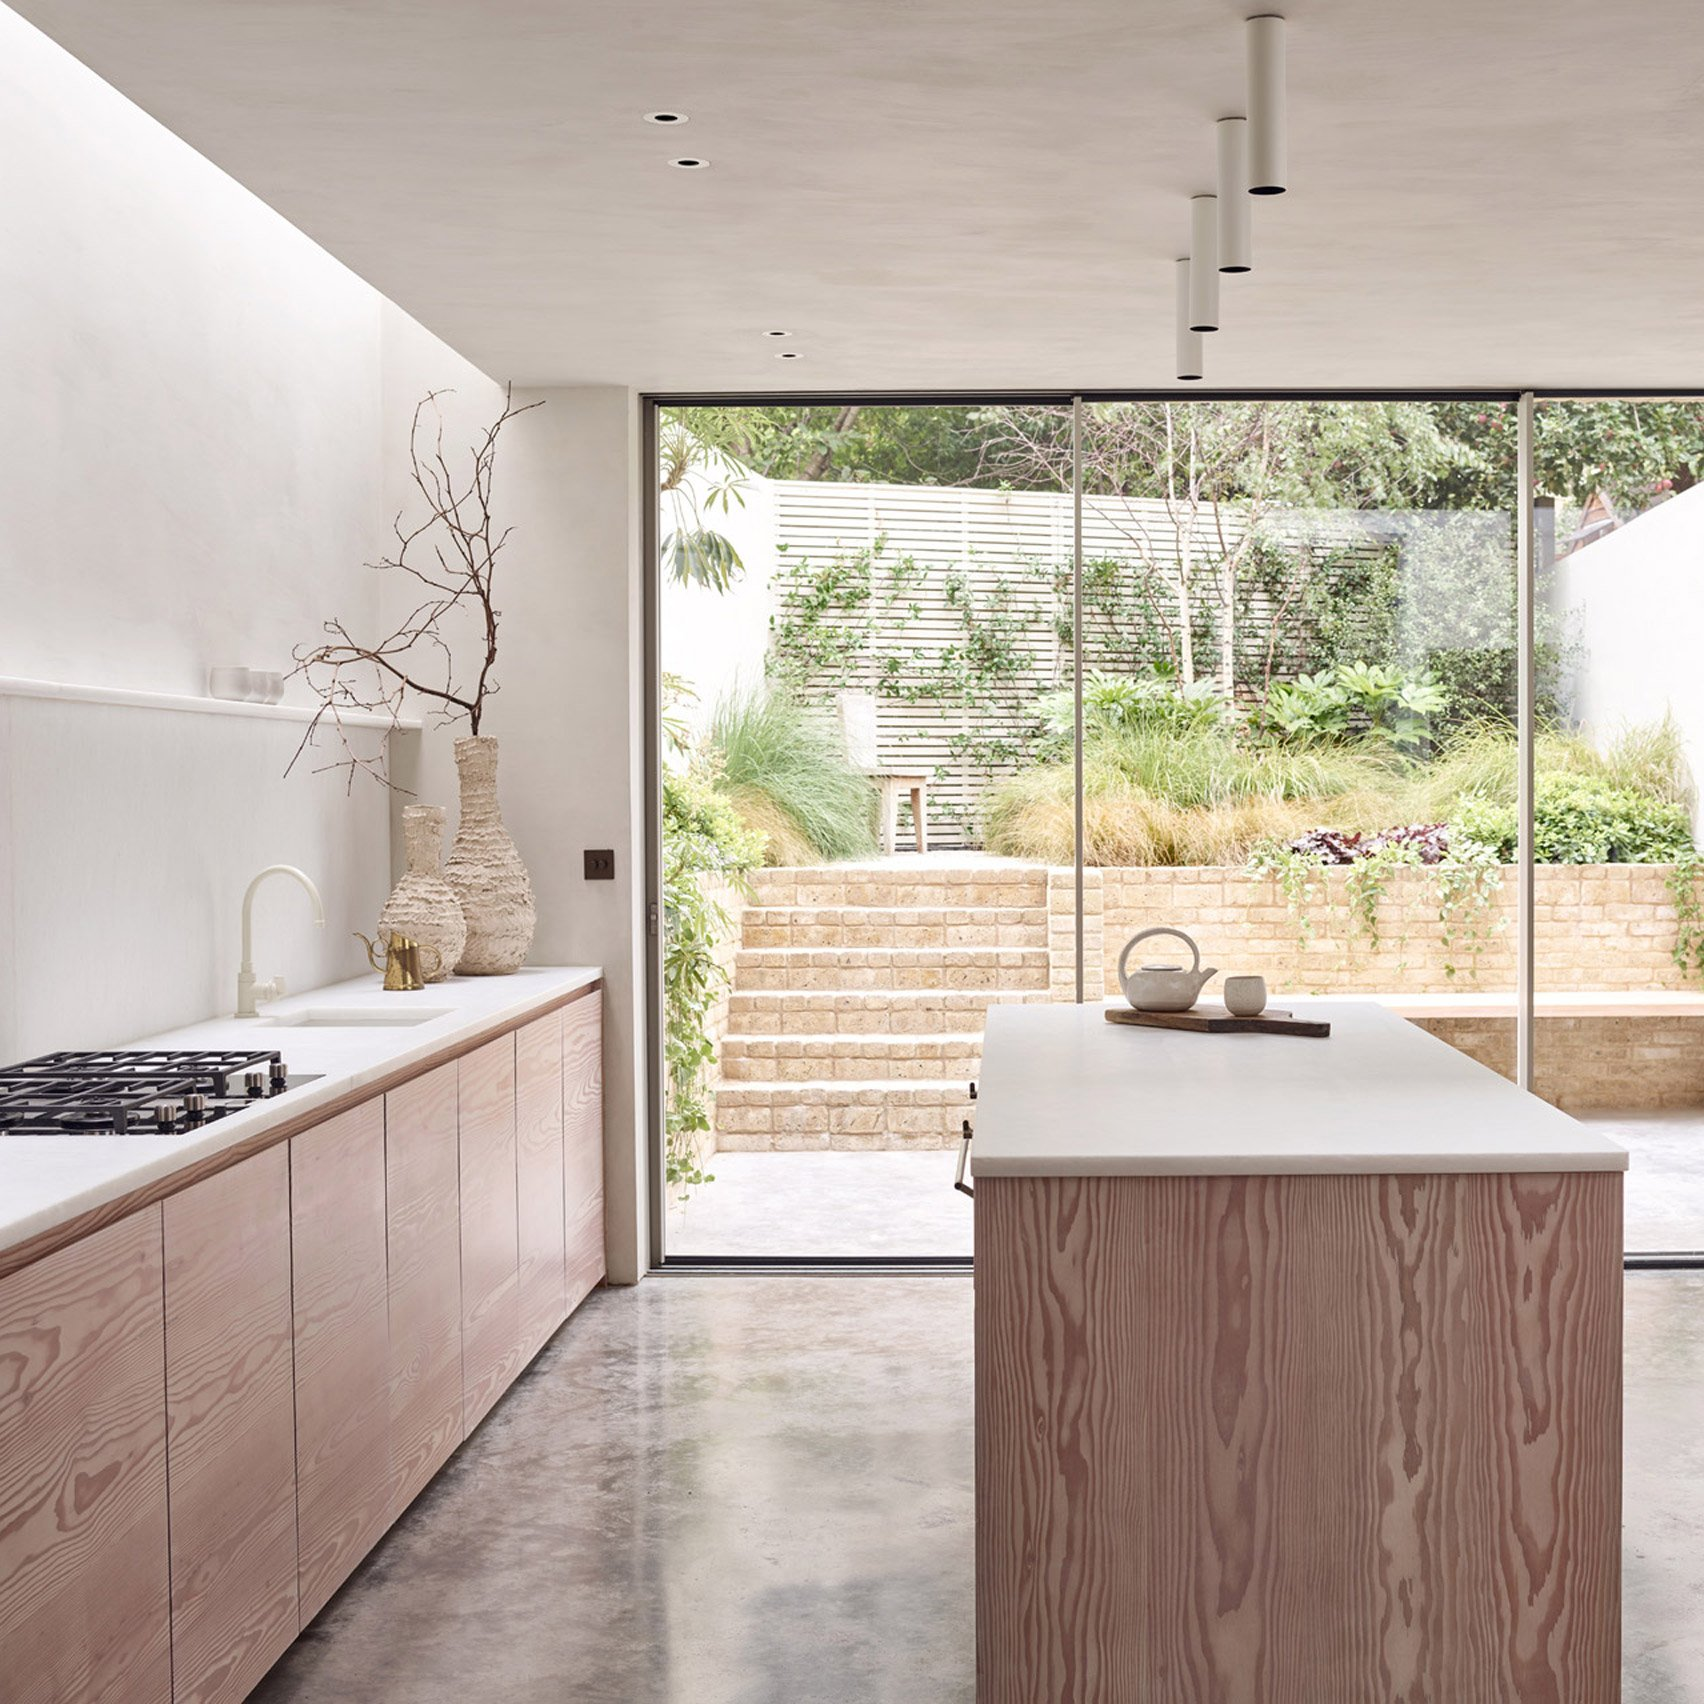 Wooden kitchens: Powerscroft Road by Daytrip